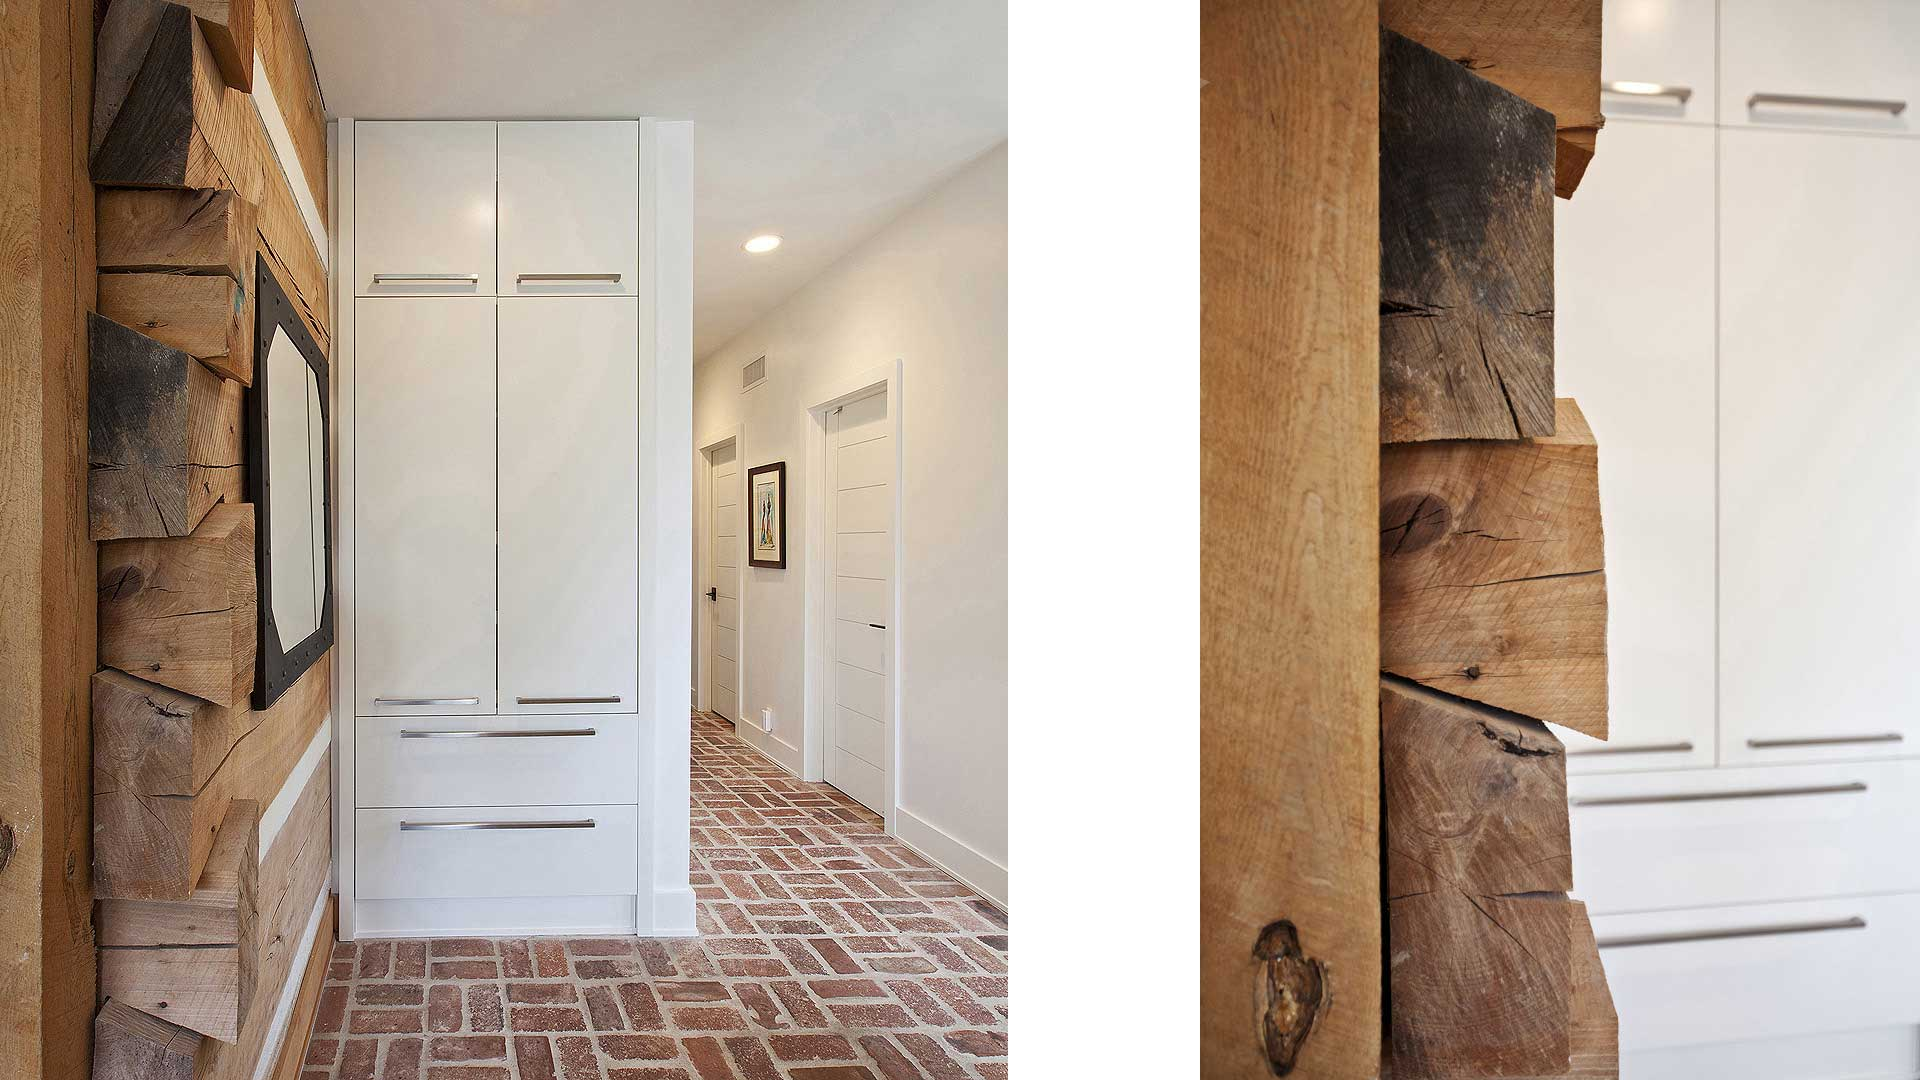 Scandinavian Rustic Cabin - Pantry Detail - Christopher Short, Architect, Indianapolis, HAUS Architecture